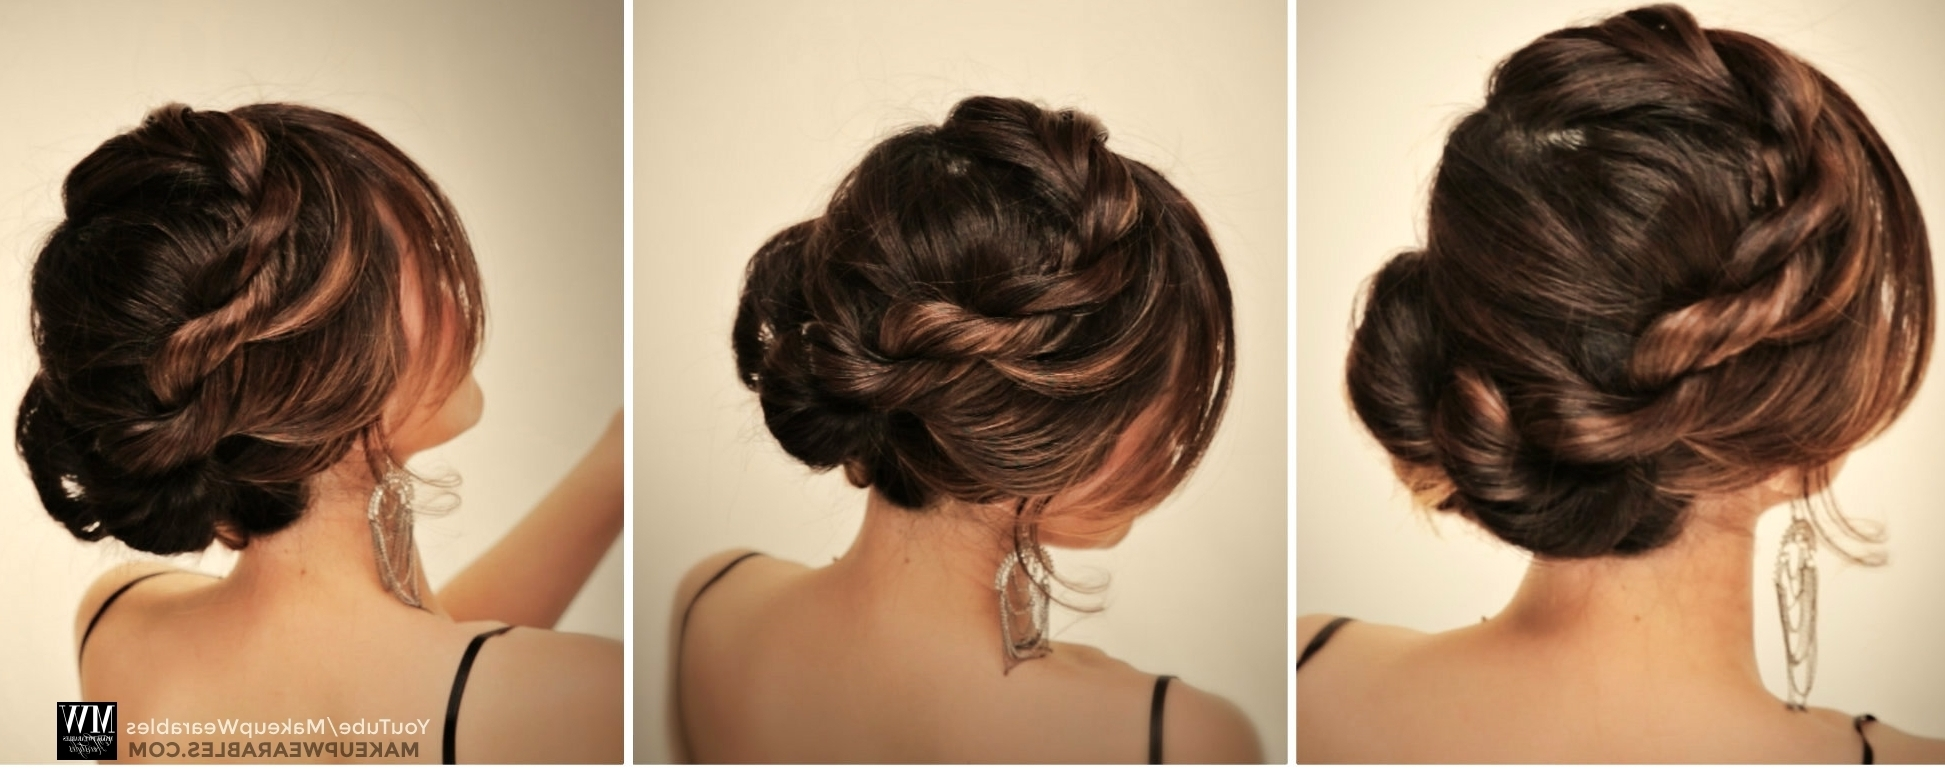 How To: 5 Amazingly Cute + Easy Hairstyles With A Simple Twist With Cute Easy Updos For Long Hair (View 12 of 15)